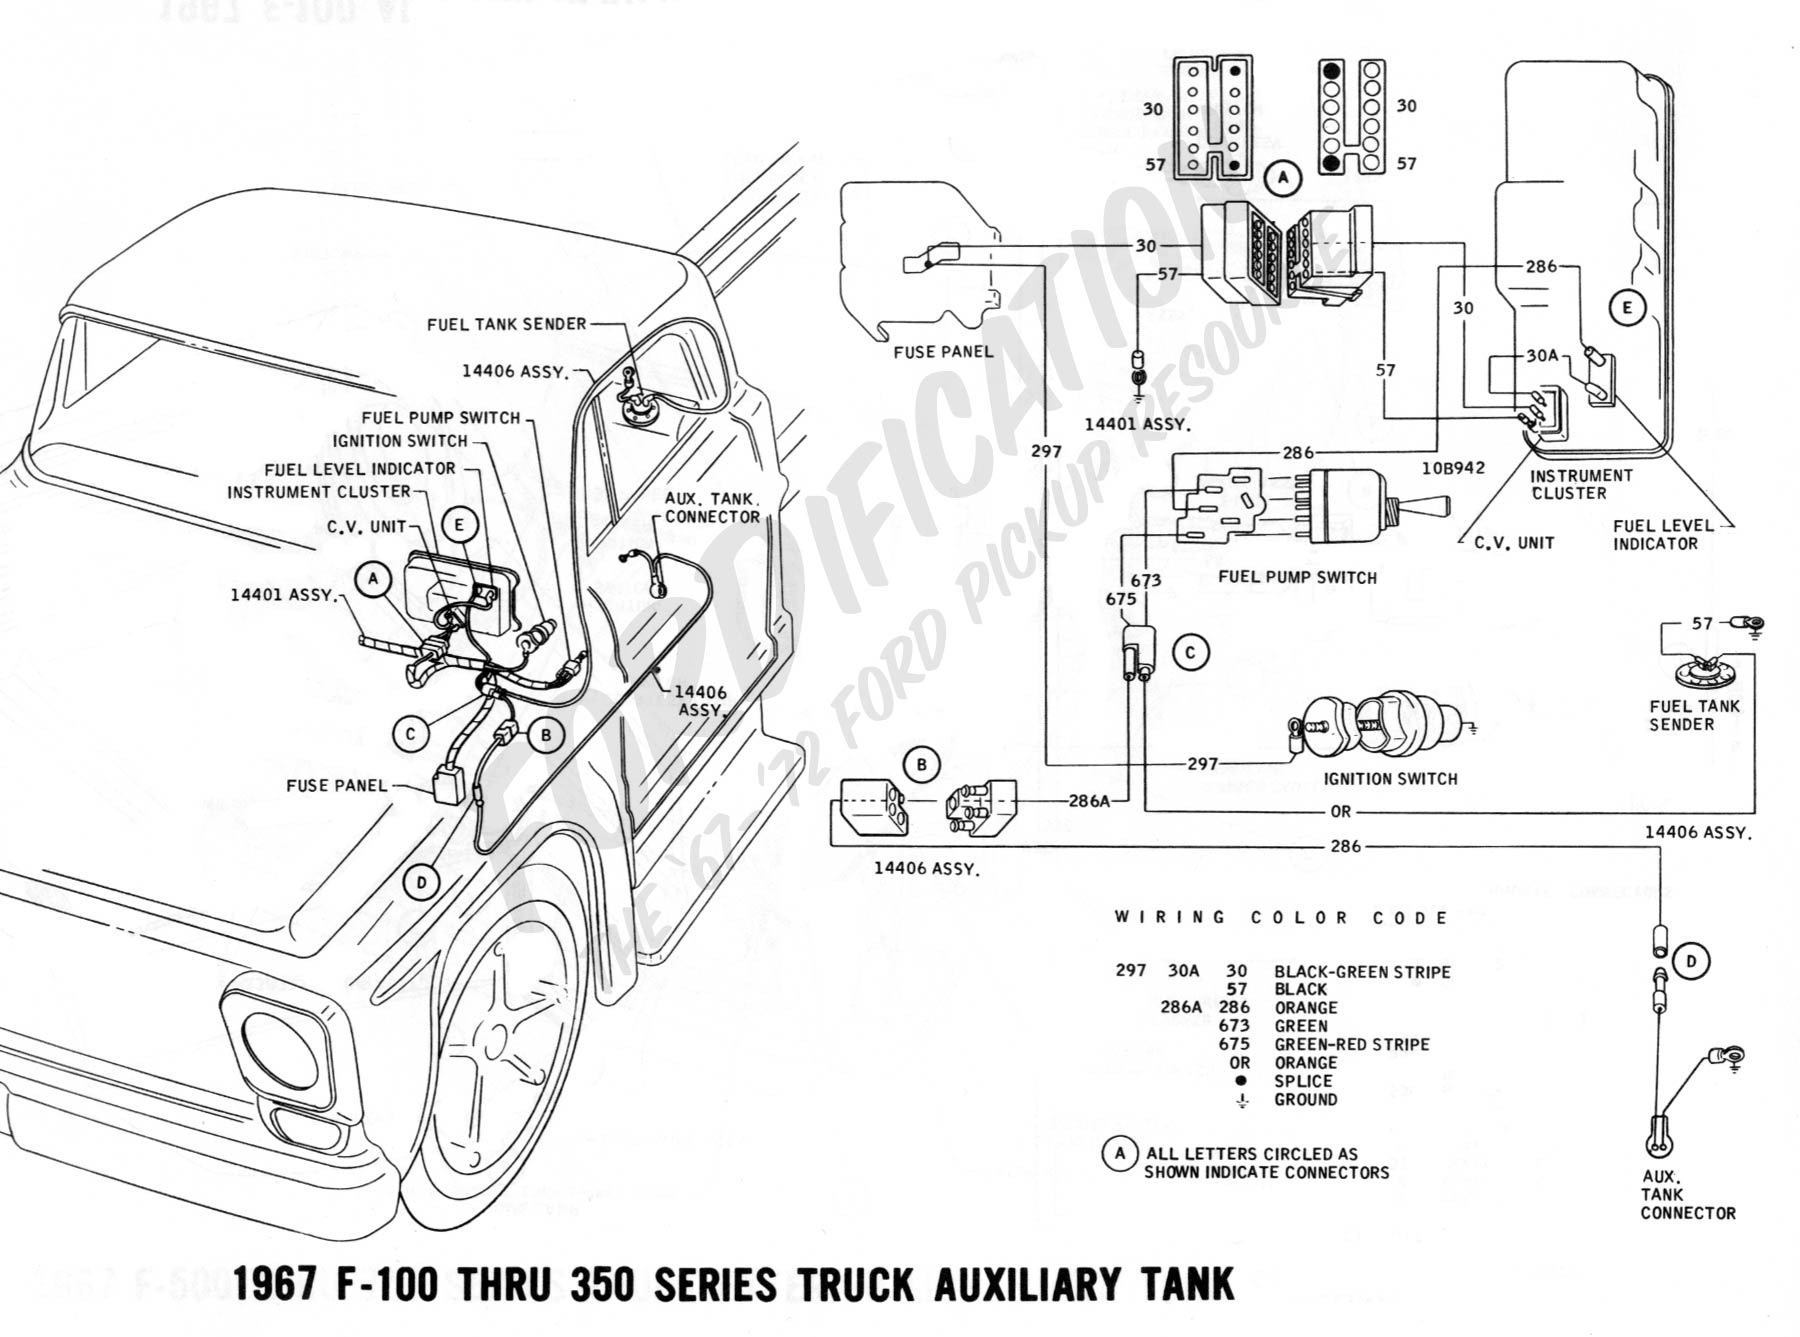 Schematic Car Wiring Diagram Page 81 Library Chevy Diagrams Site 1967 F 100 Thru 350 Auxiliary Fuel Tank